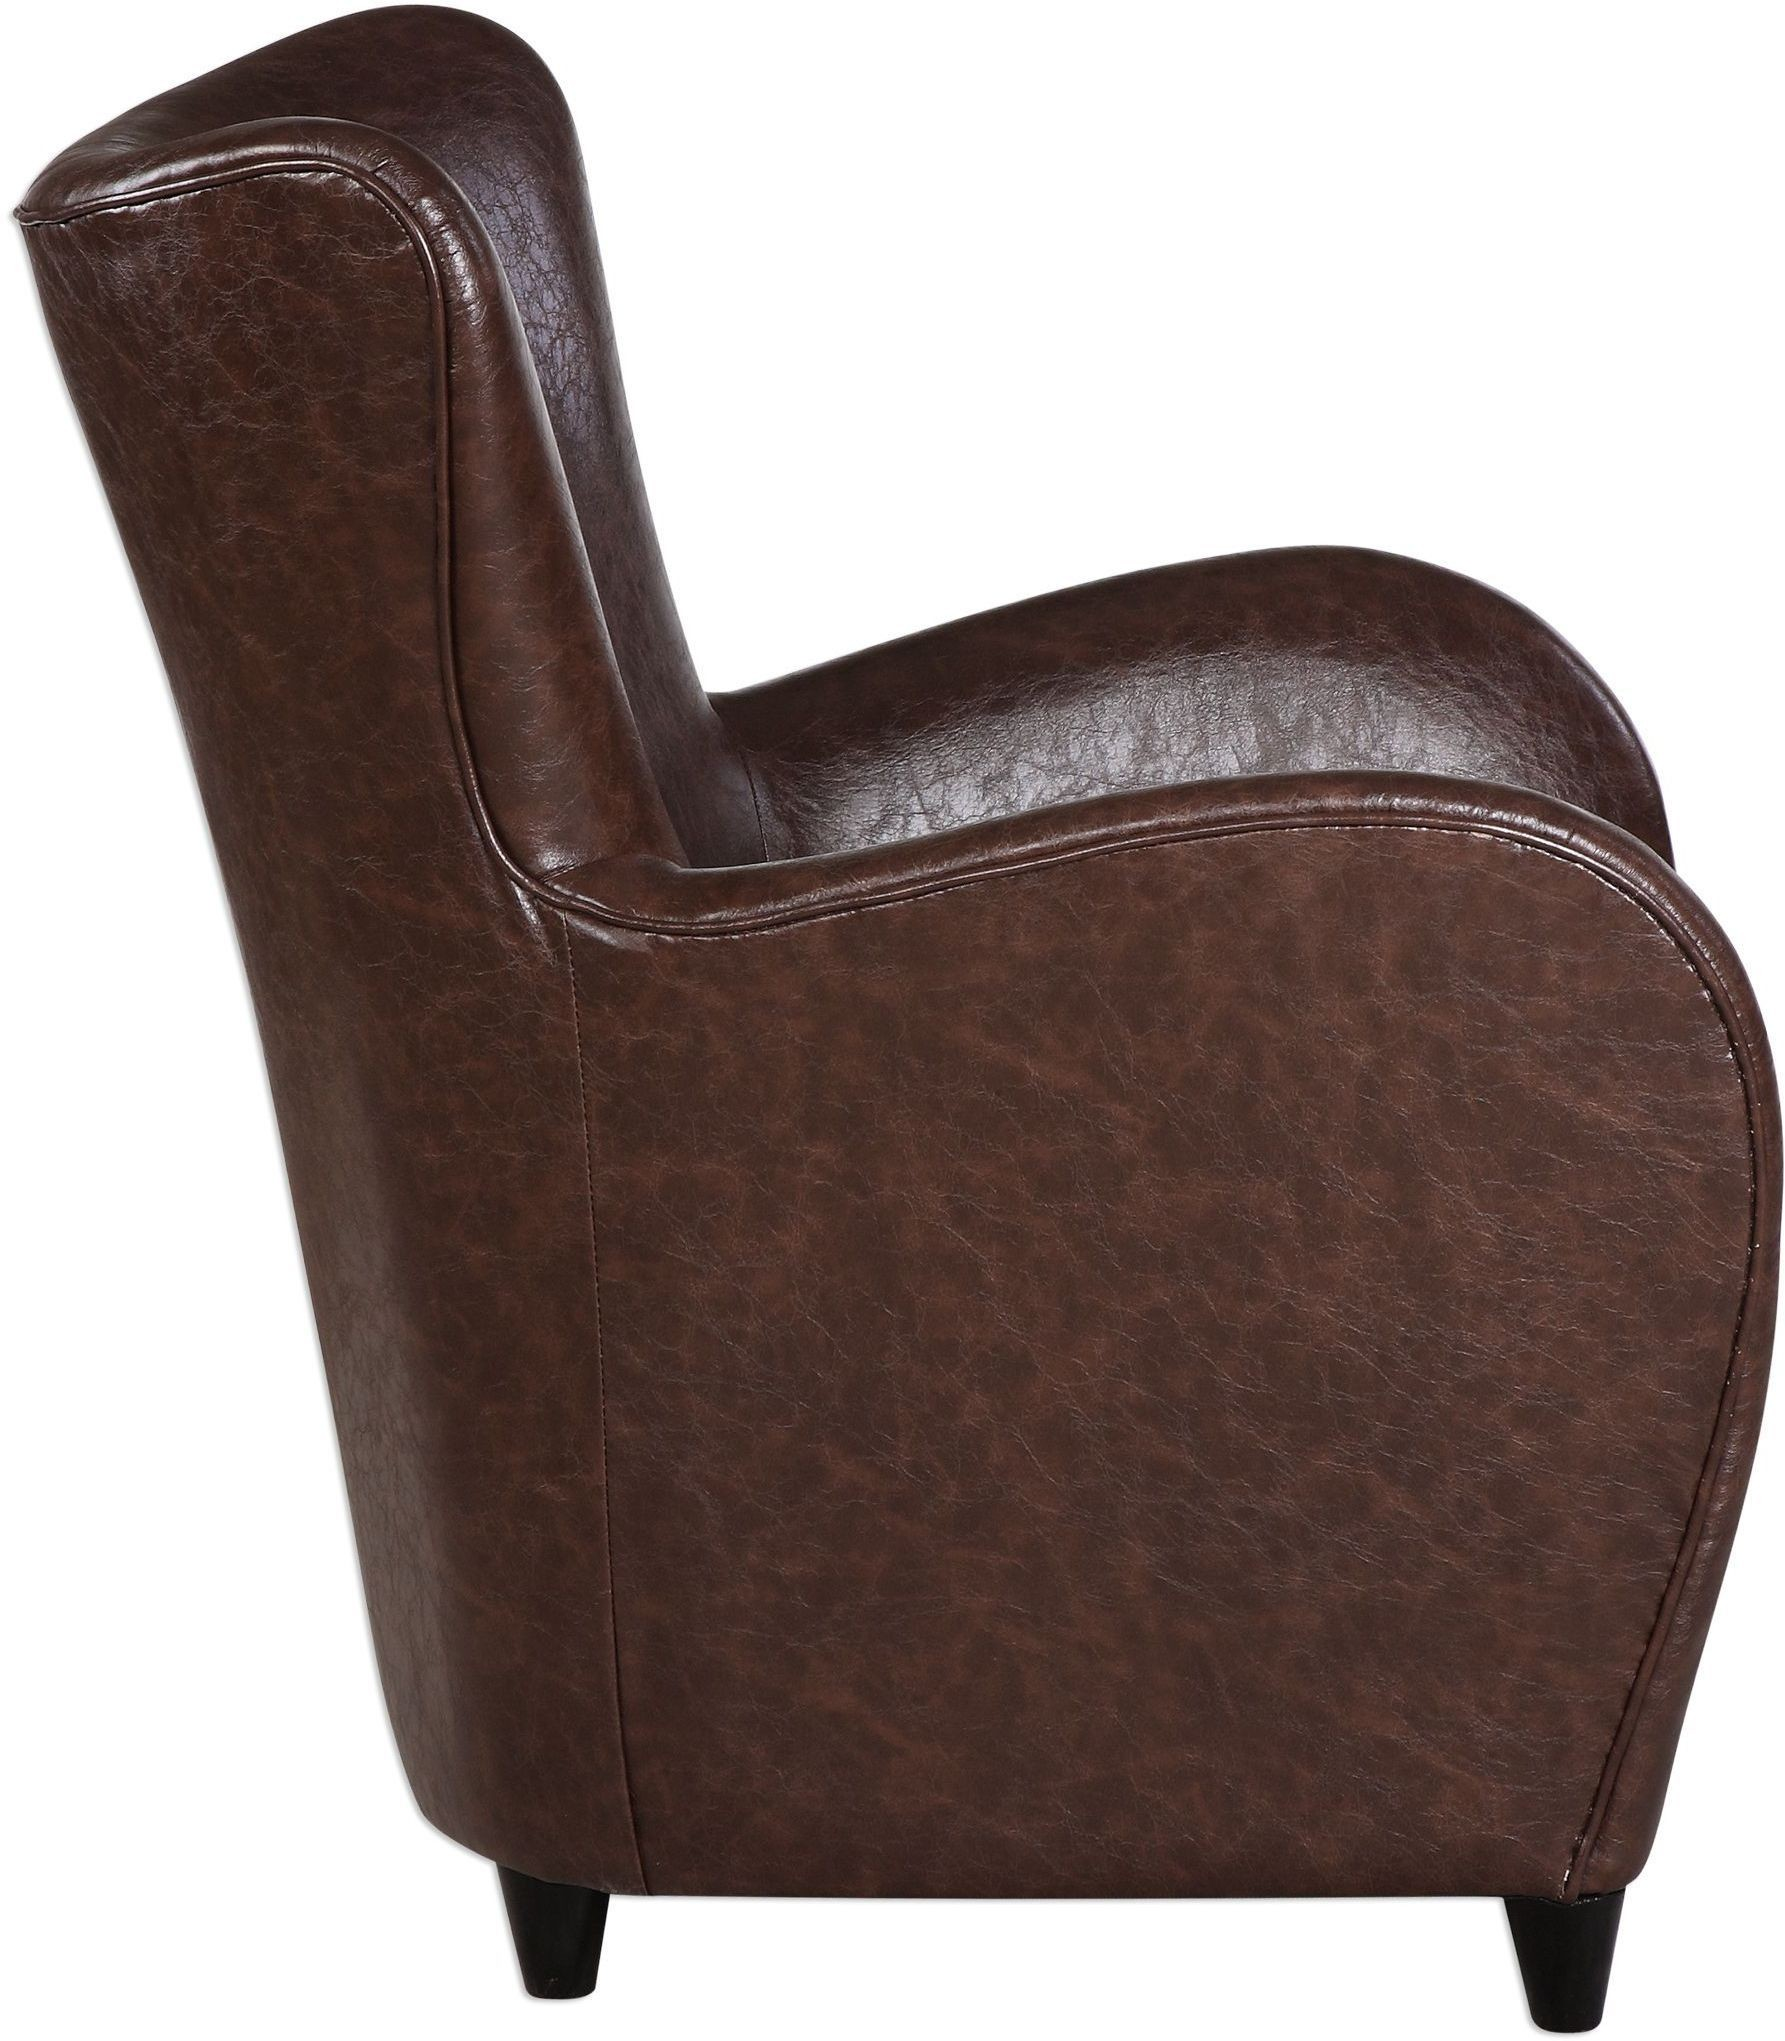 Lyric brown leather accent chair 23335 uttermost for Accent chair with brown leather sofa